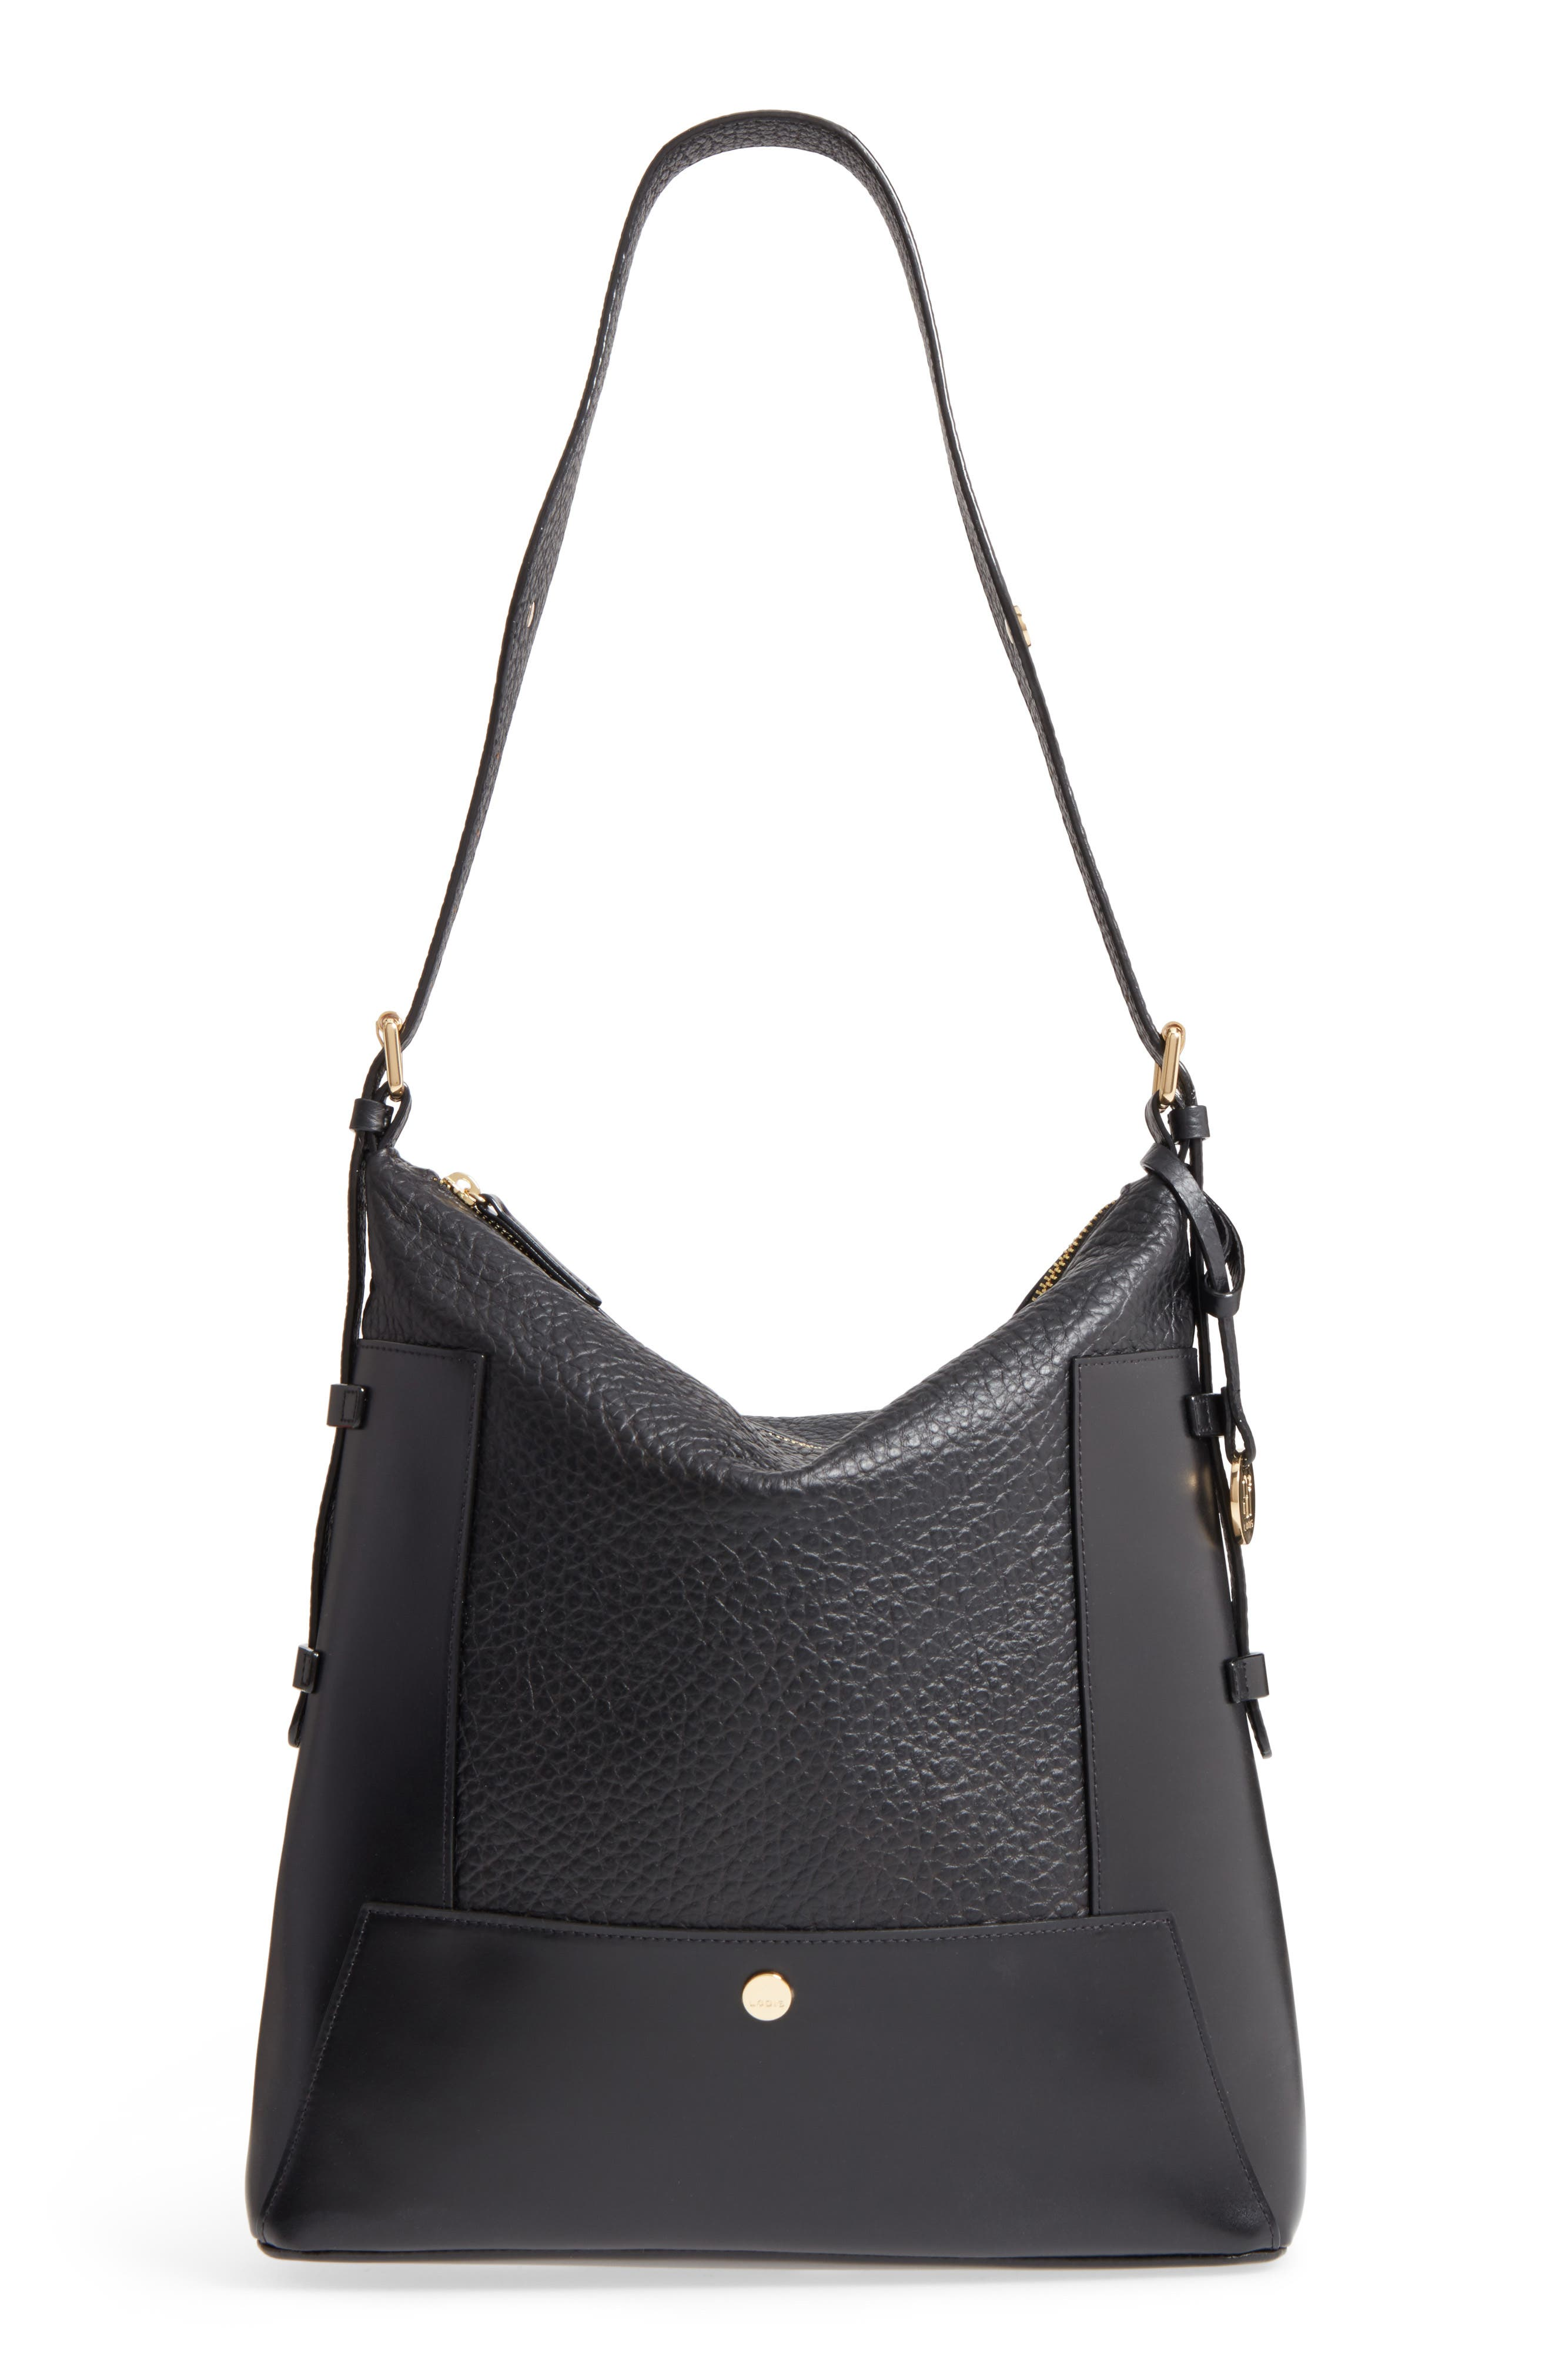 Lodis In the Mix Emerson RFID Leather Hobo Bag